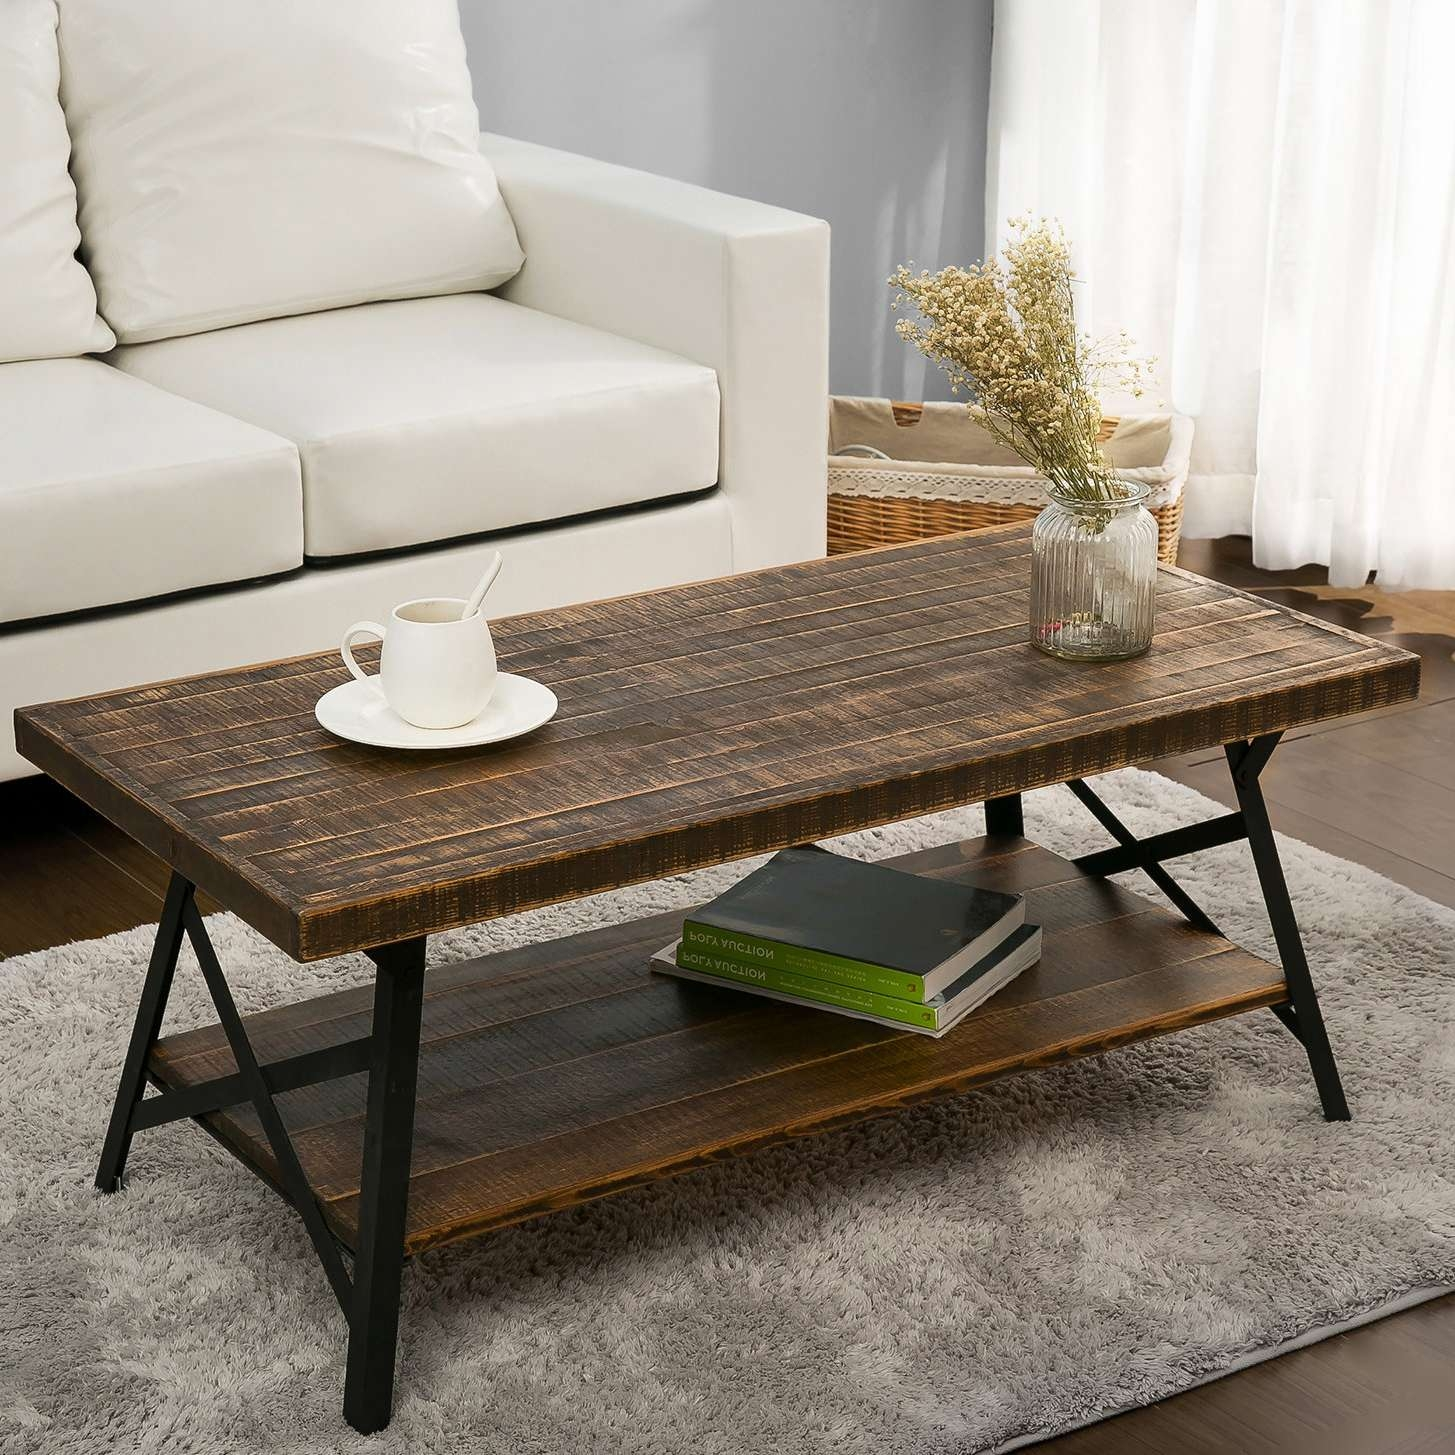 Wayfair Within Latest Coffee Tables With Magazine Rack (View 18 of 20)